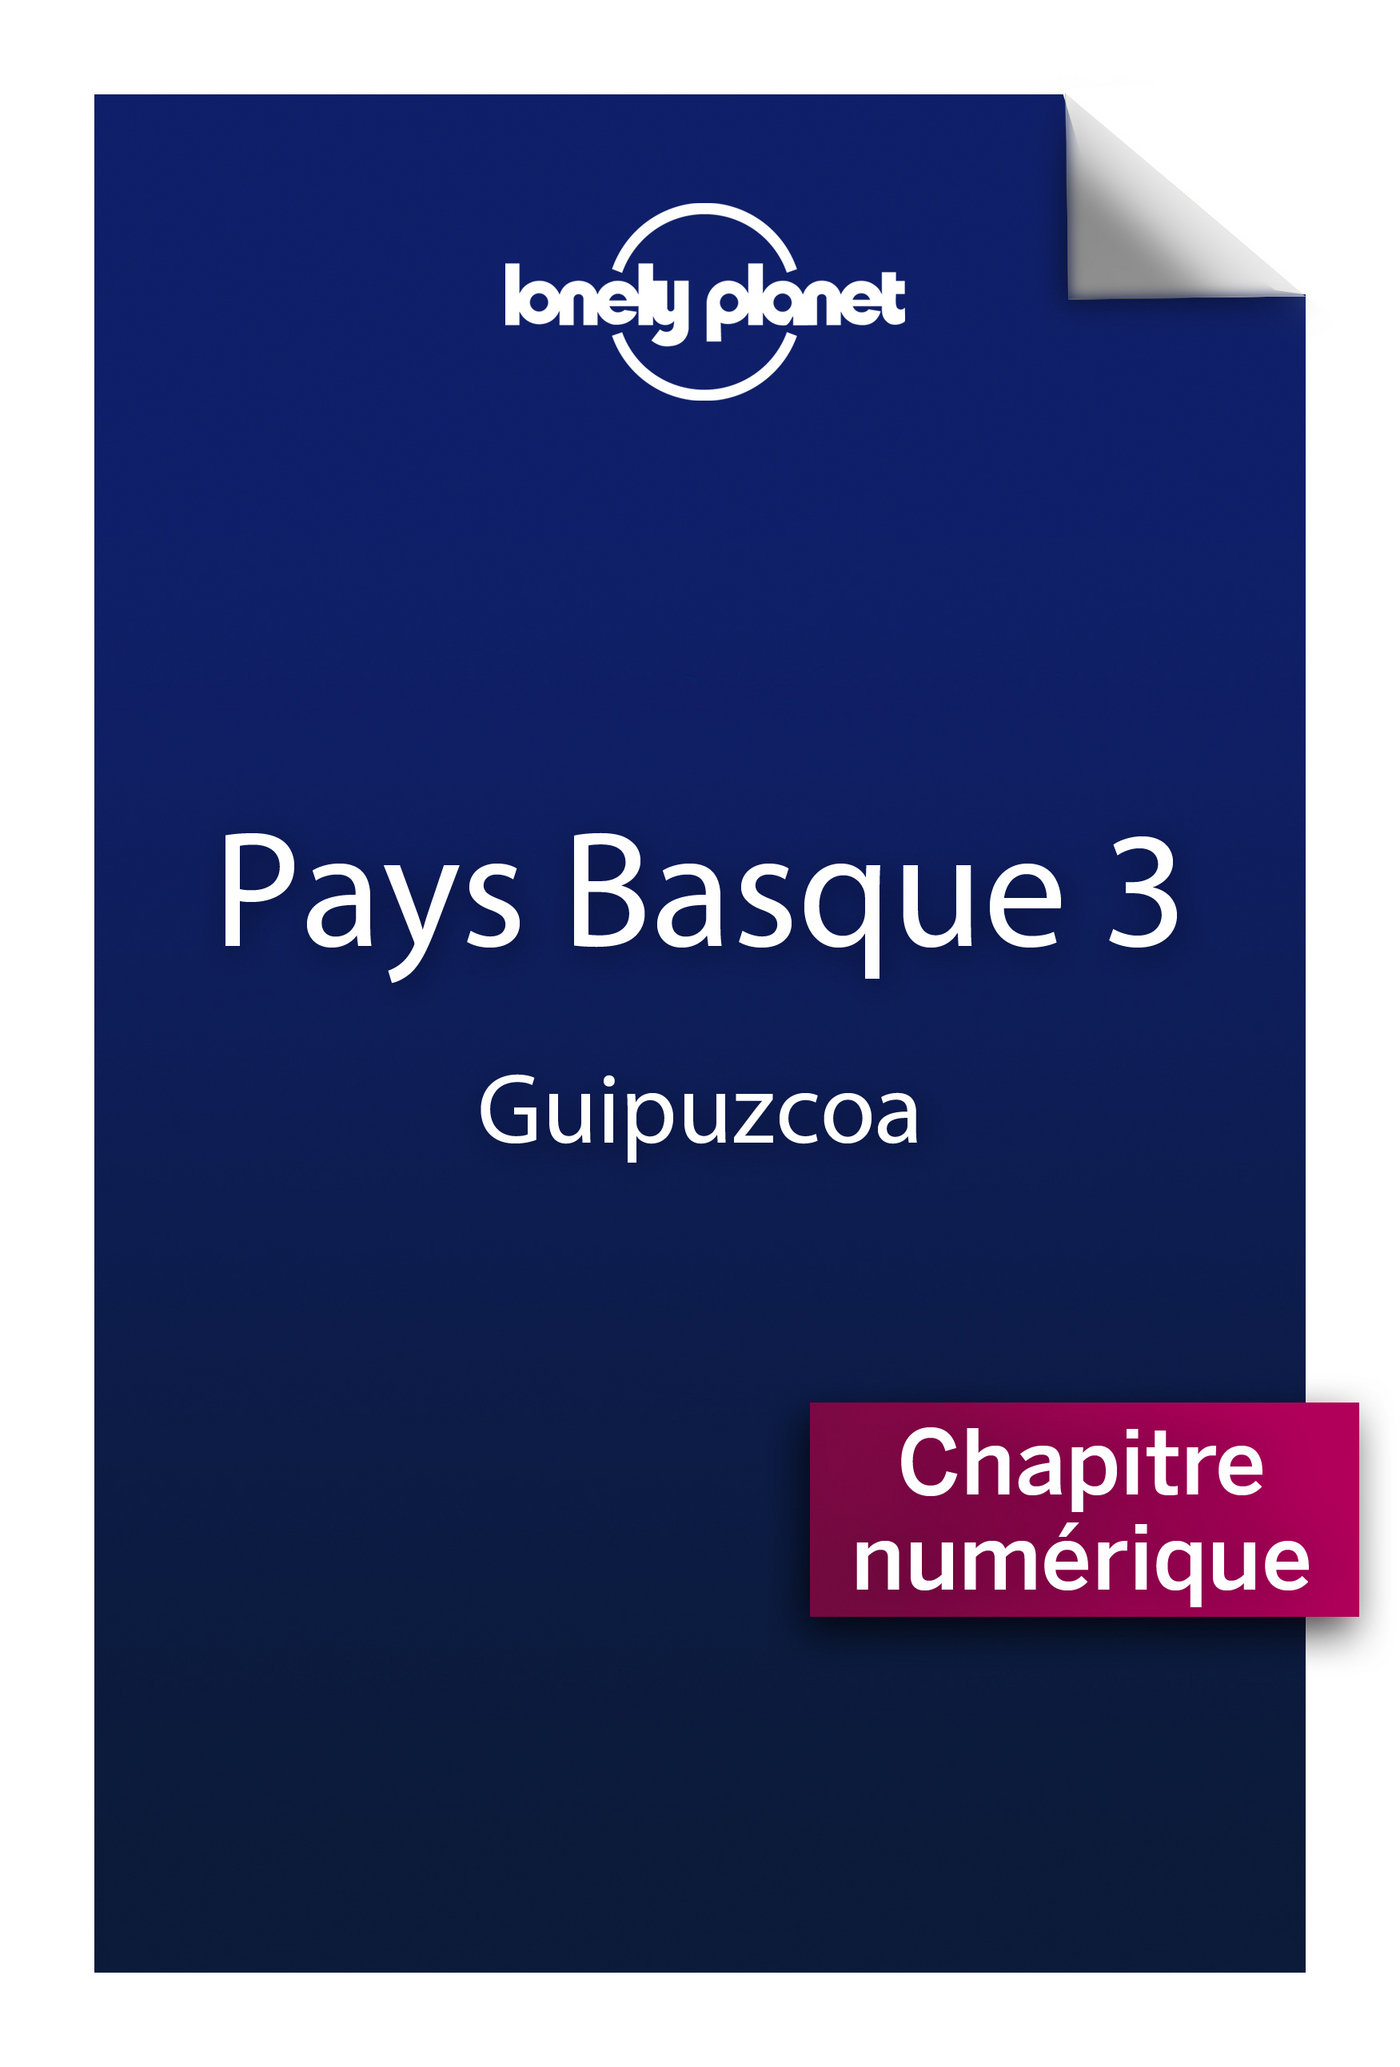 Pays basque 3 - Guipuzcoa